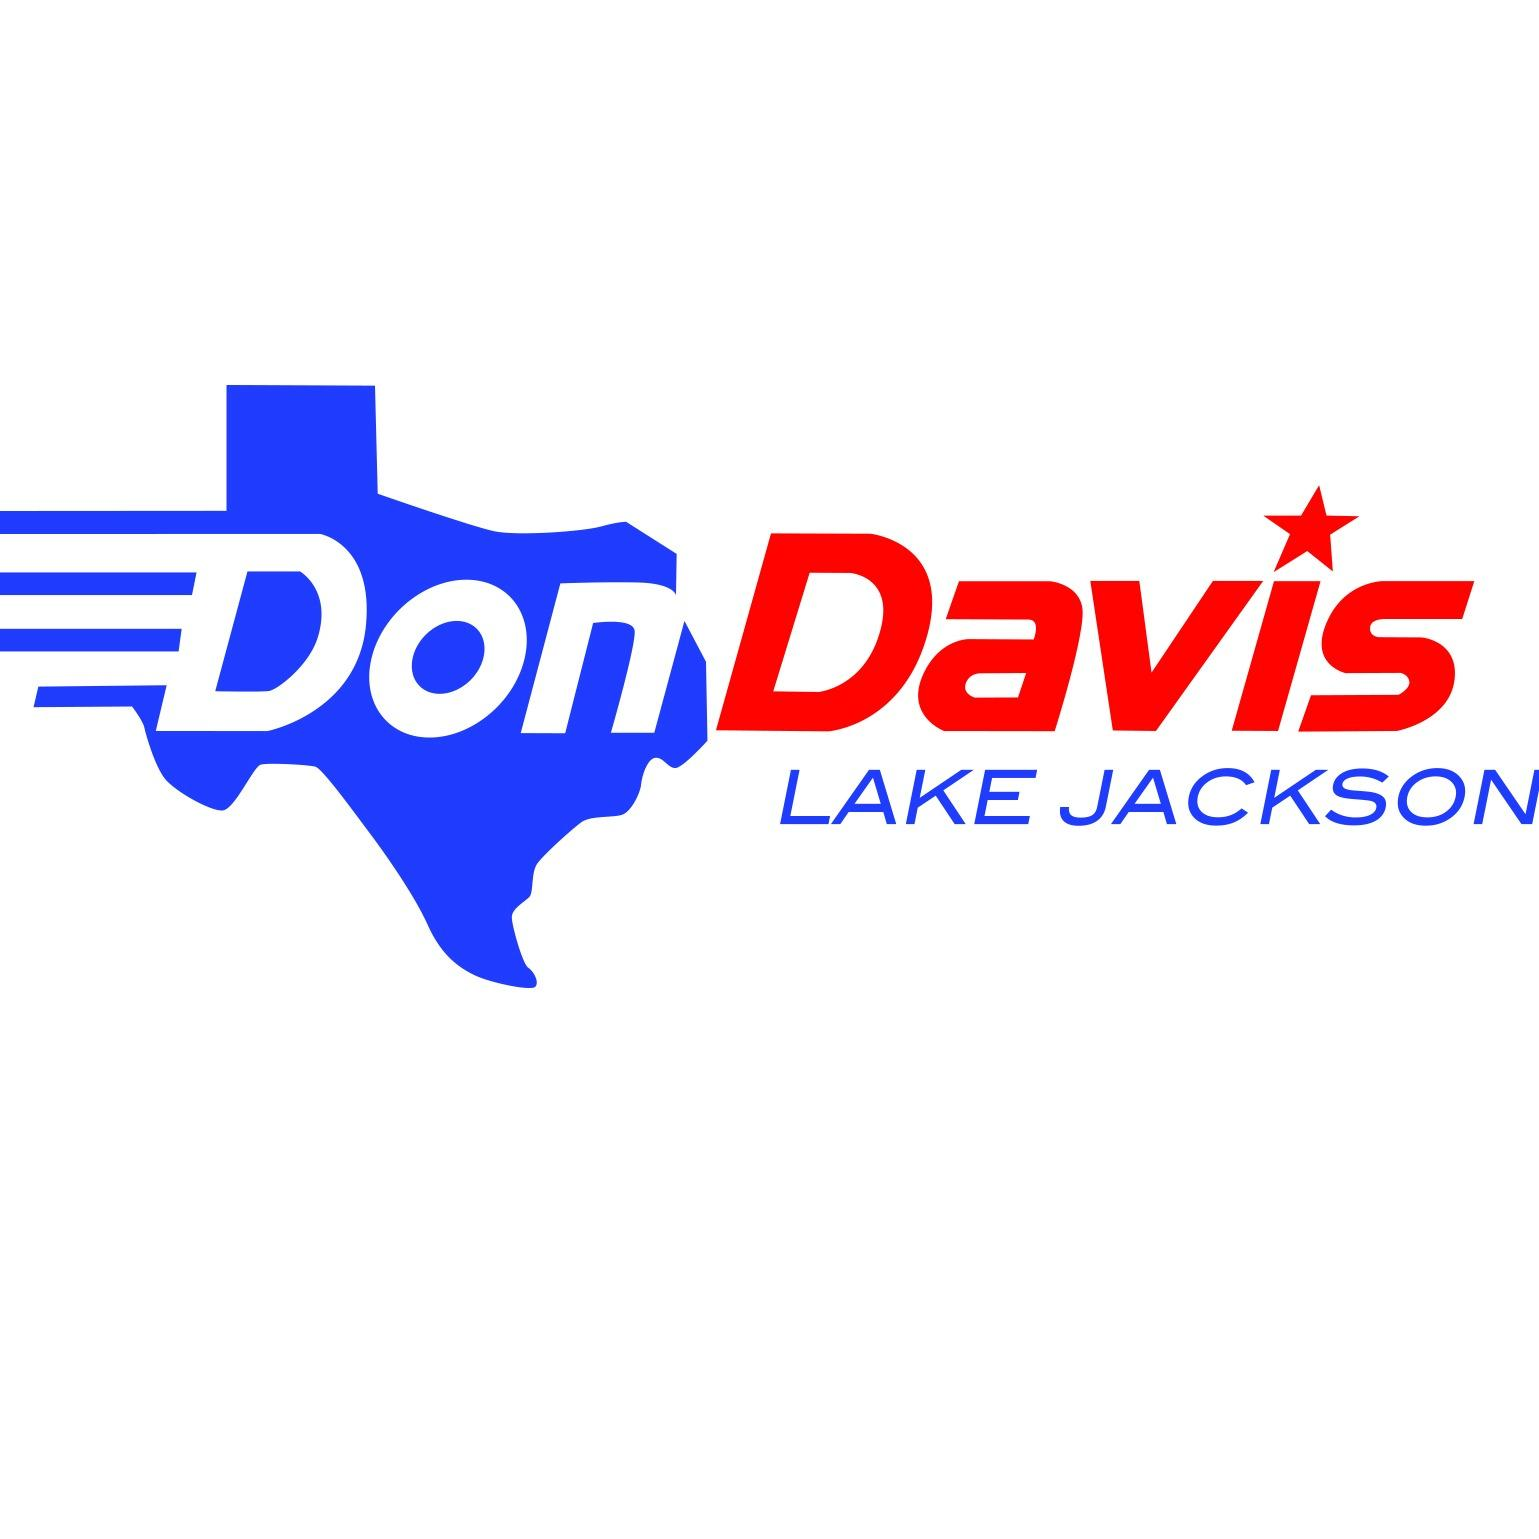 Don Davis Chevrolet Buick GMC Chrysler Dodge Jeep & Ram Lake Jackson image 0